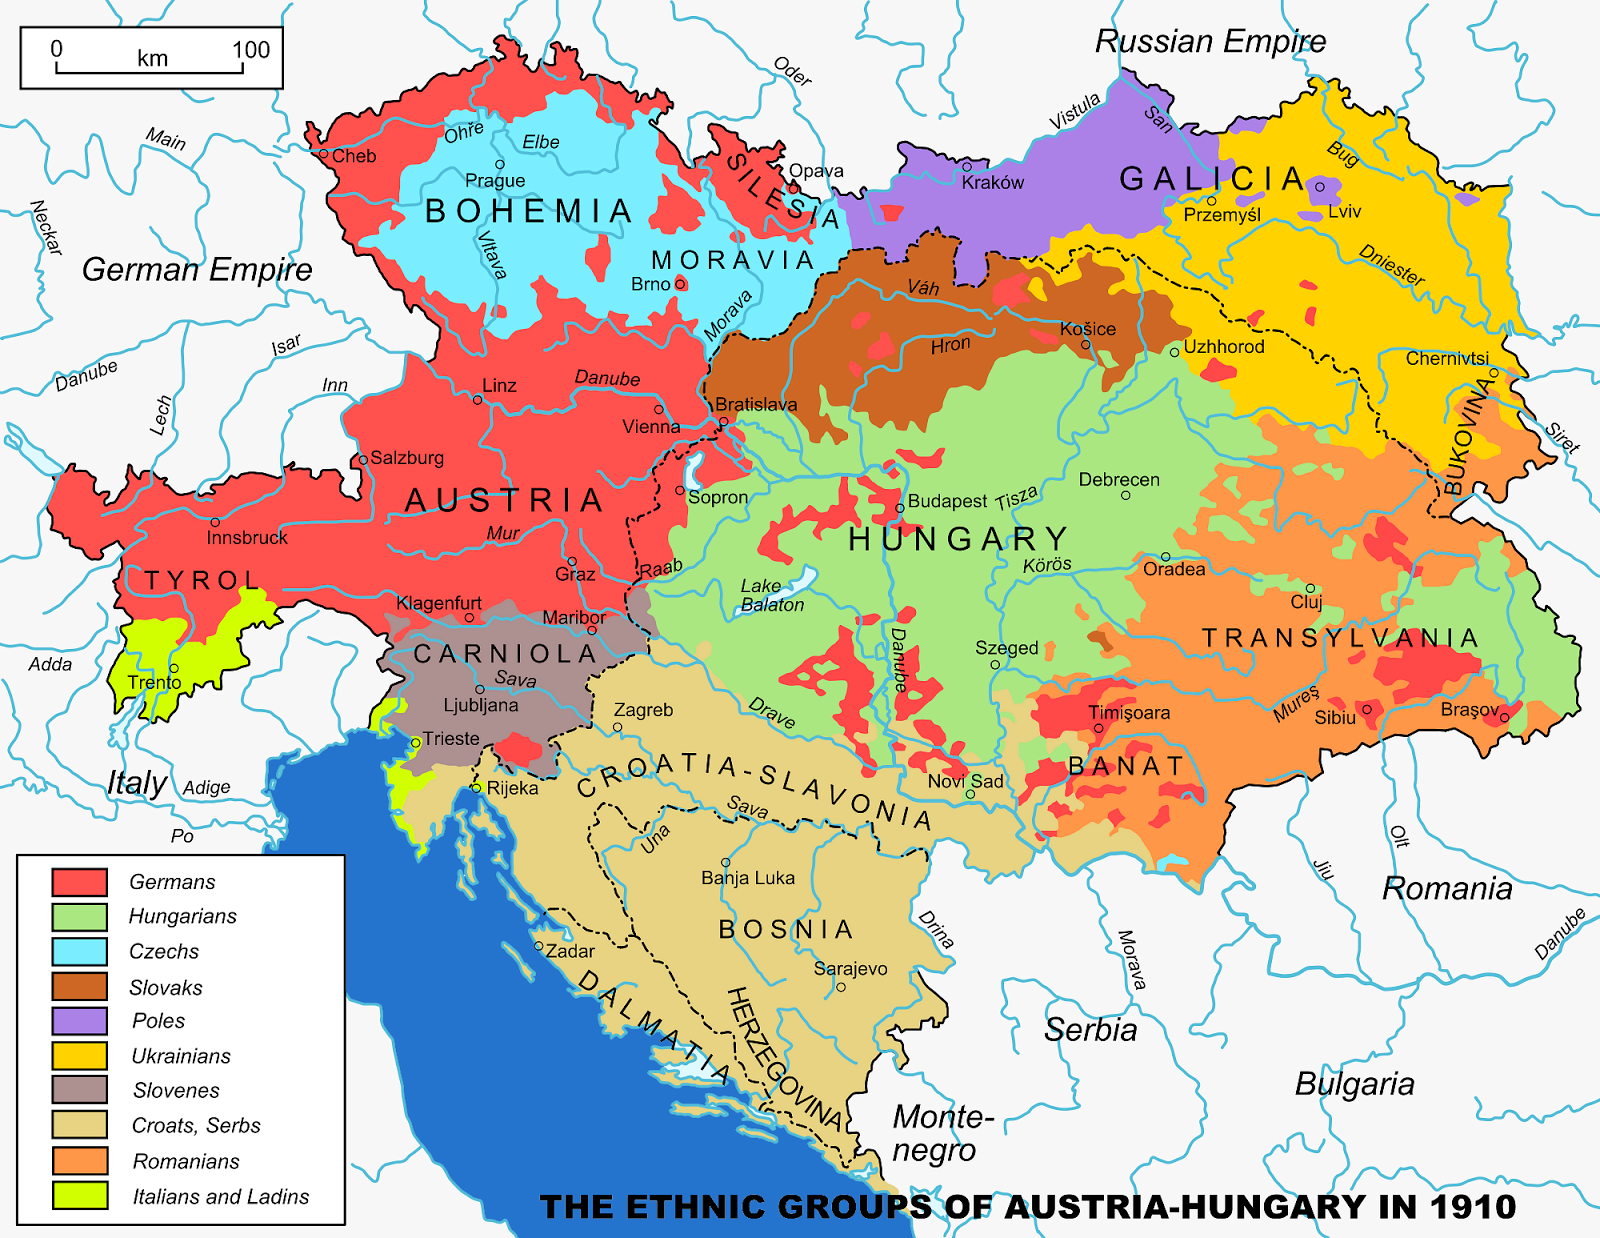 Austro-Hungarian Empire in 1910